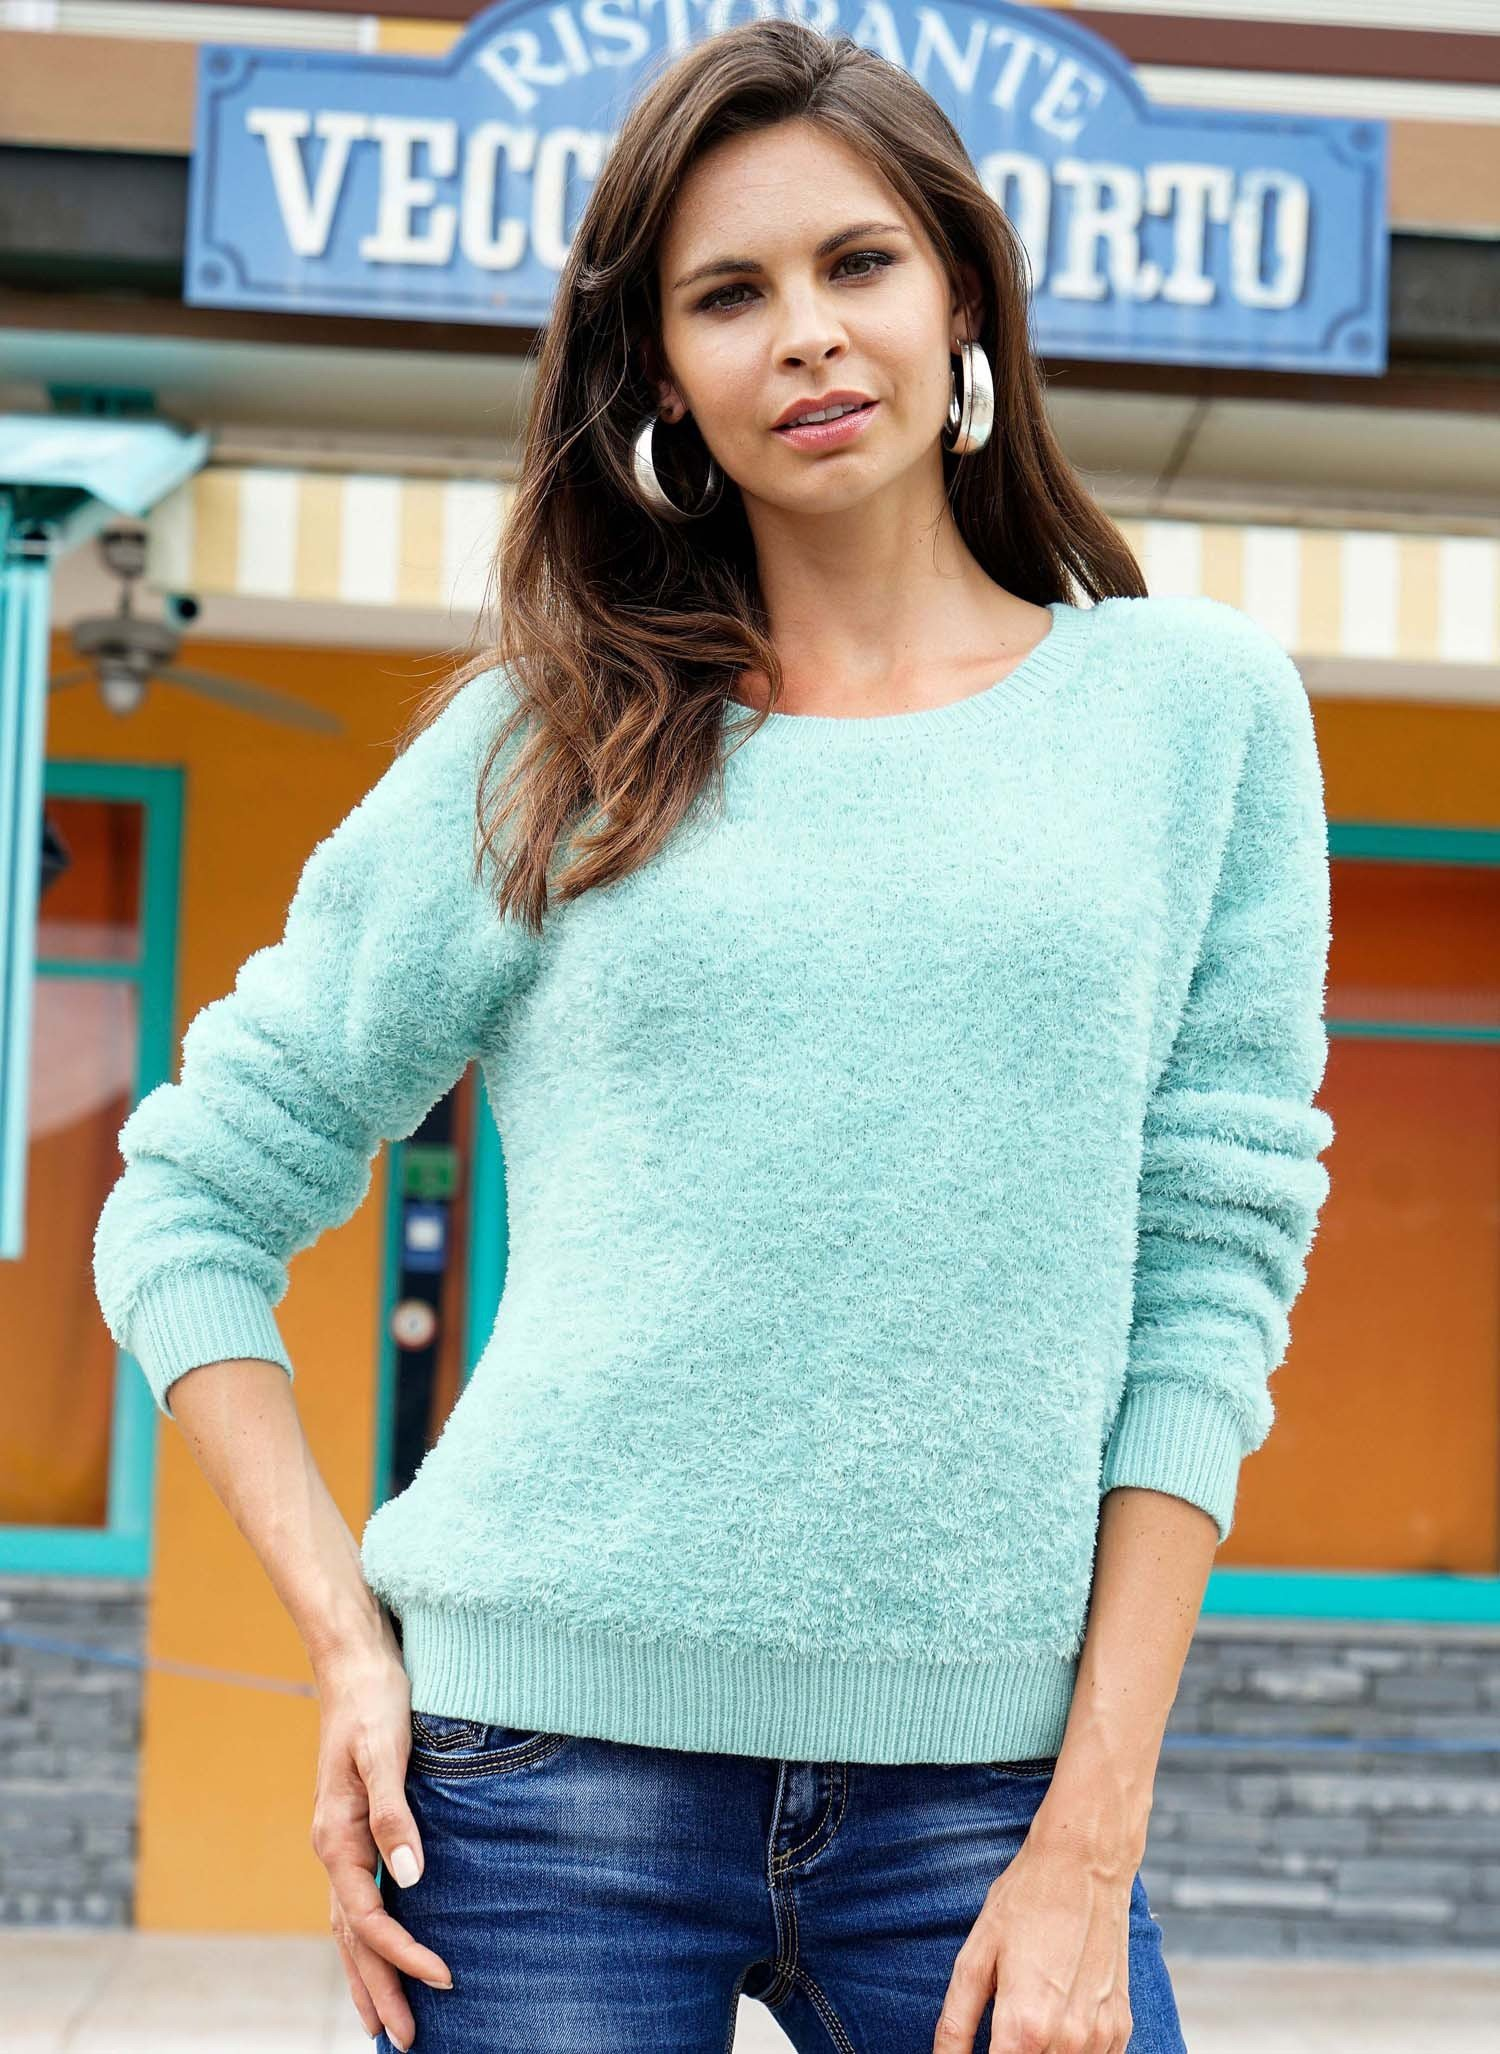 D-Pullover,Chenille,mint L 078 - 1 - Ronja.ch